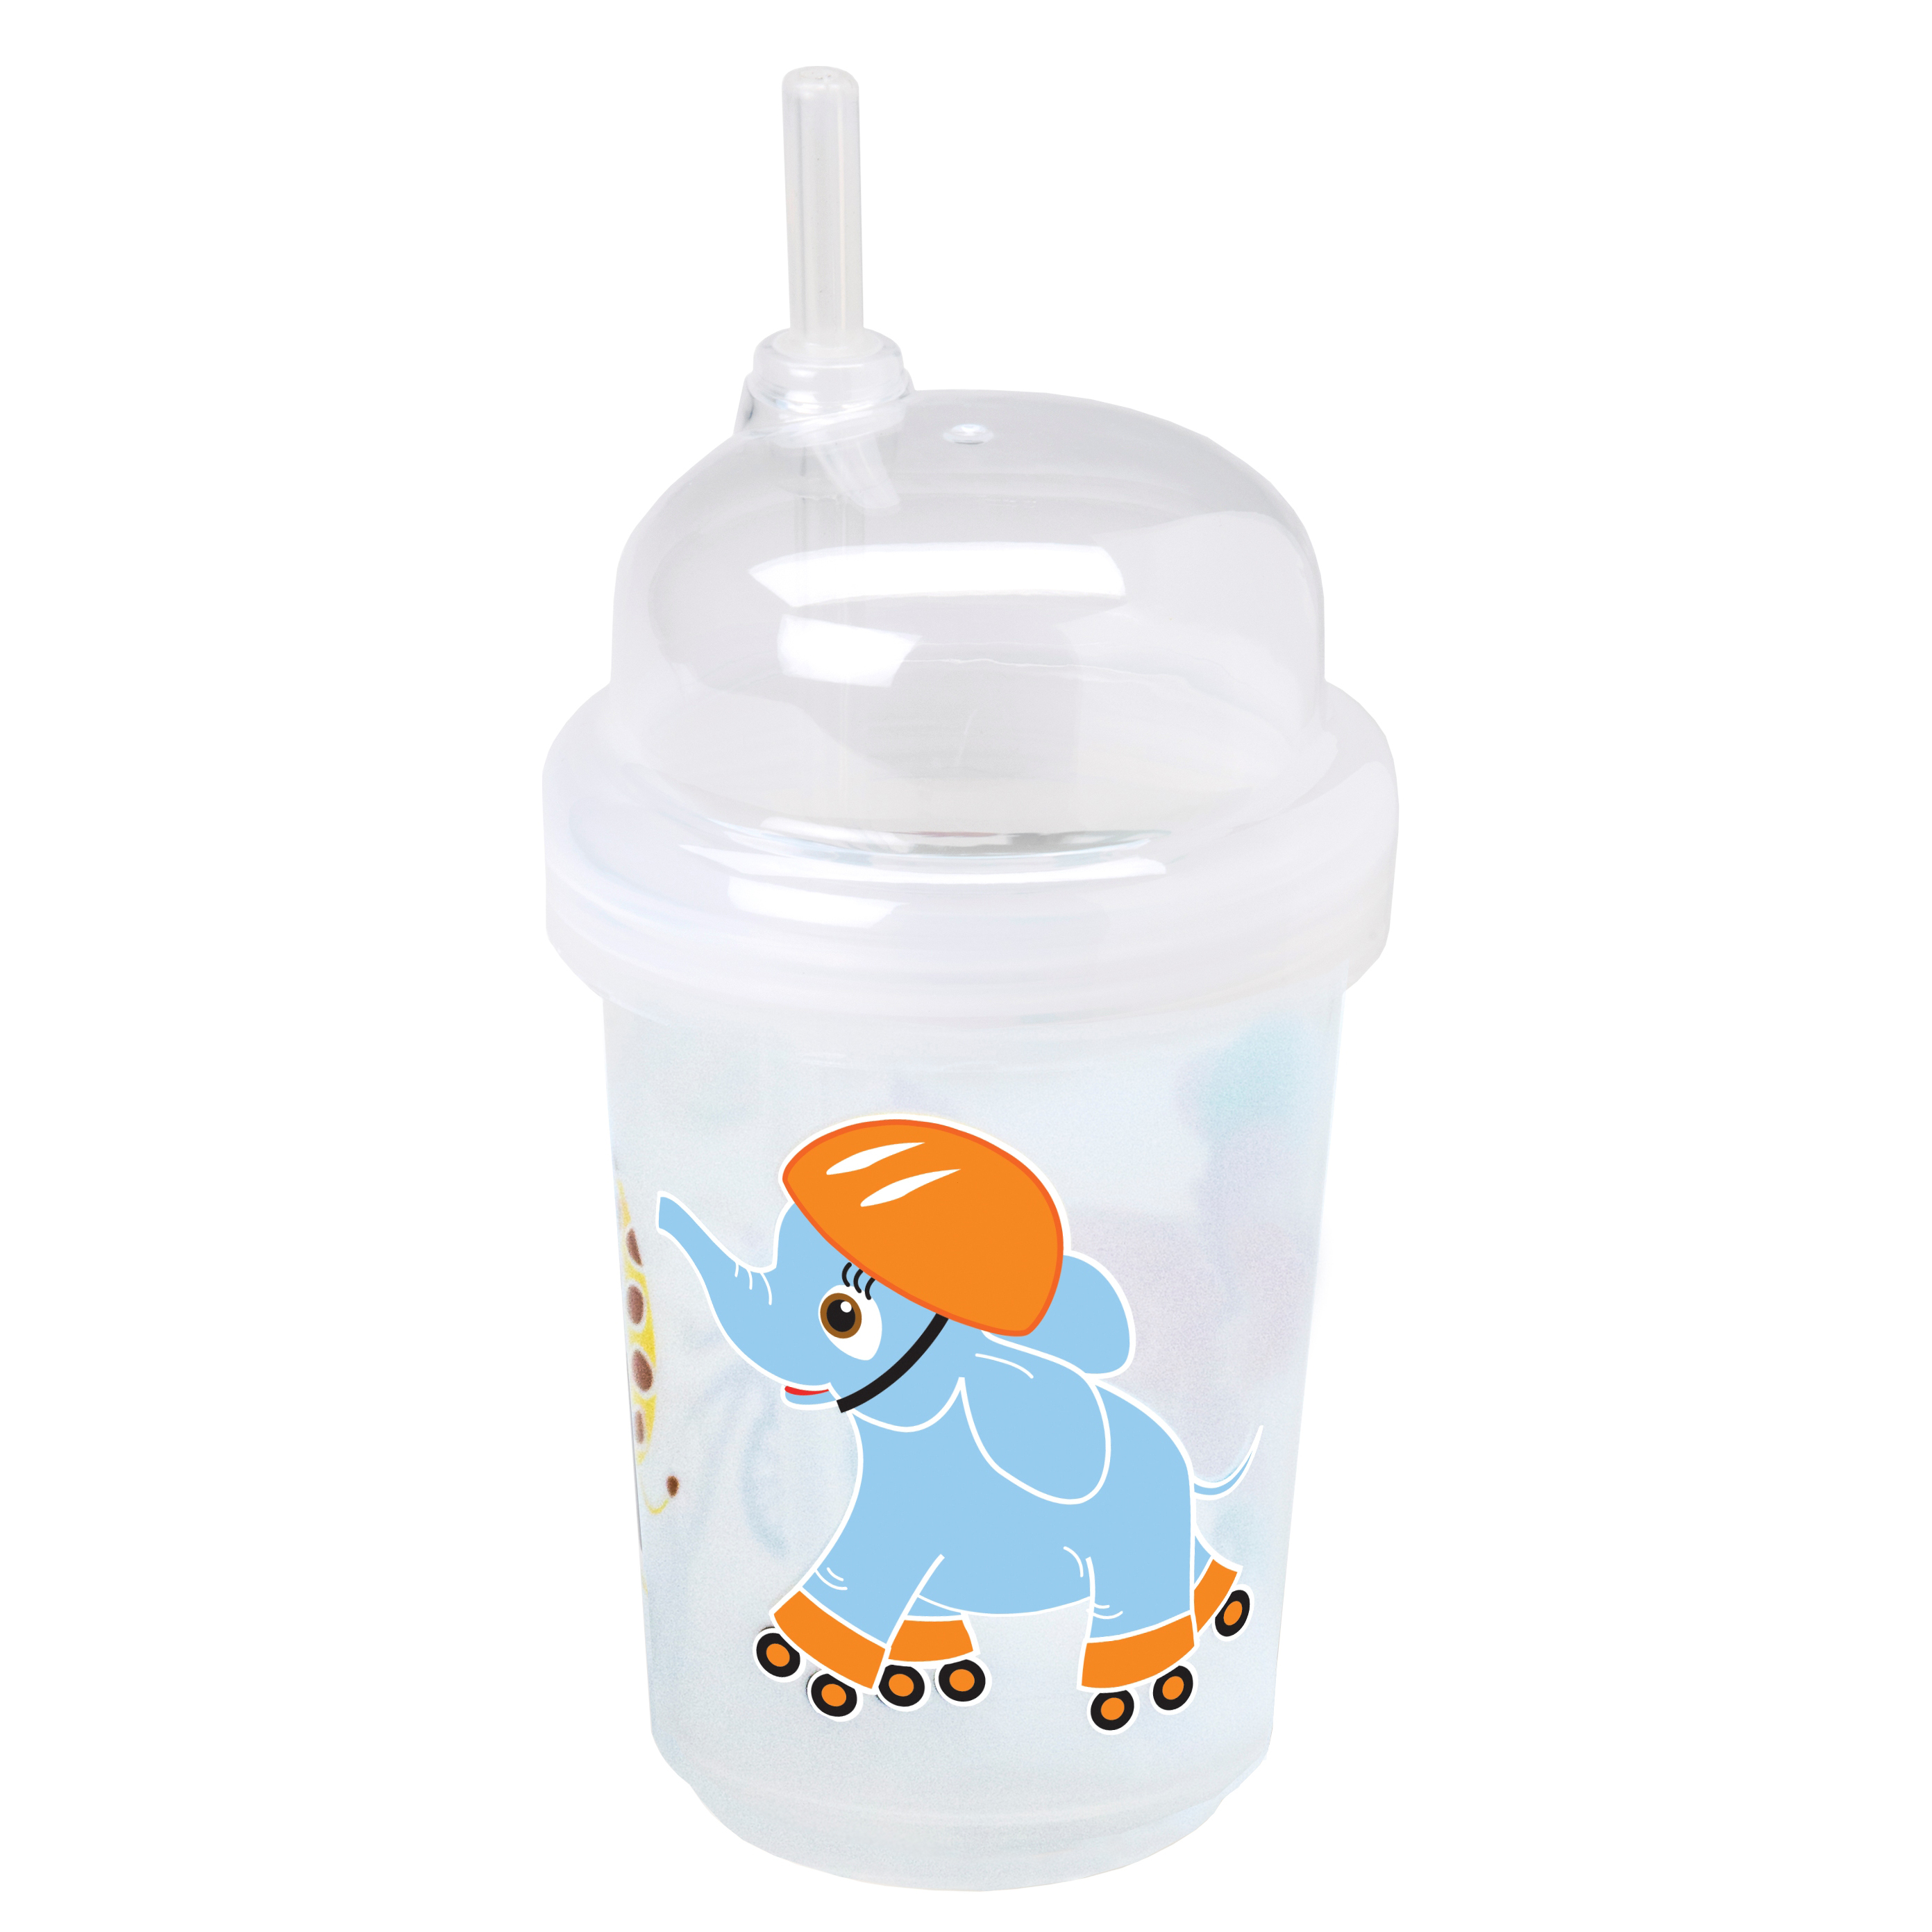 nuSpin Kids - Zoomi Straw Cup, shown in Safari Animals Style.